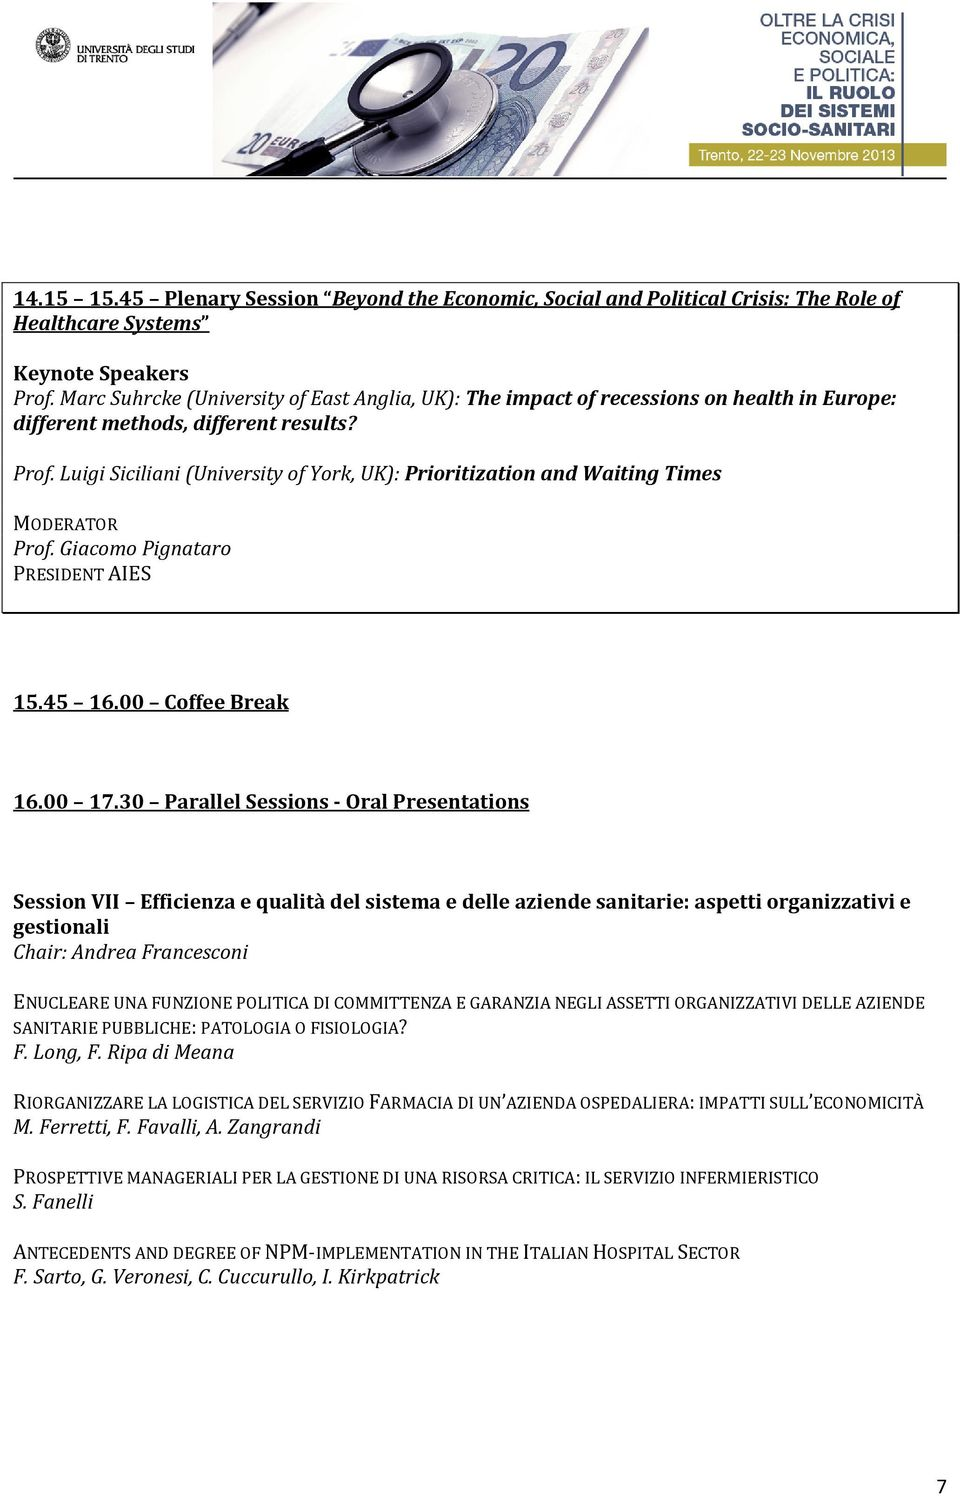 Luigi Siciliani (University of York, UK): Prioritization and Waiting Times MODERATOR Prof. Giacomo Pignataro PRESIDENT AIES 15.45 16.00 Coffee Break 16.00 17.